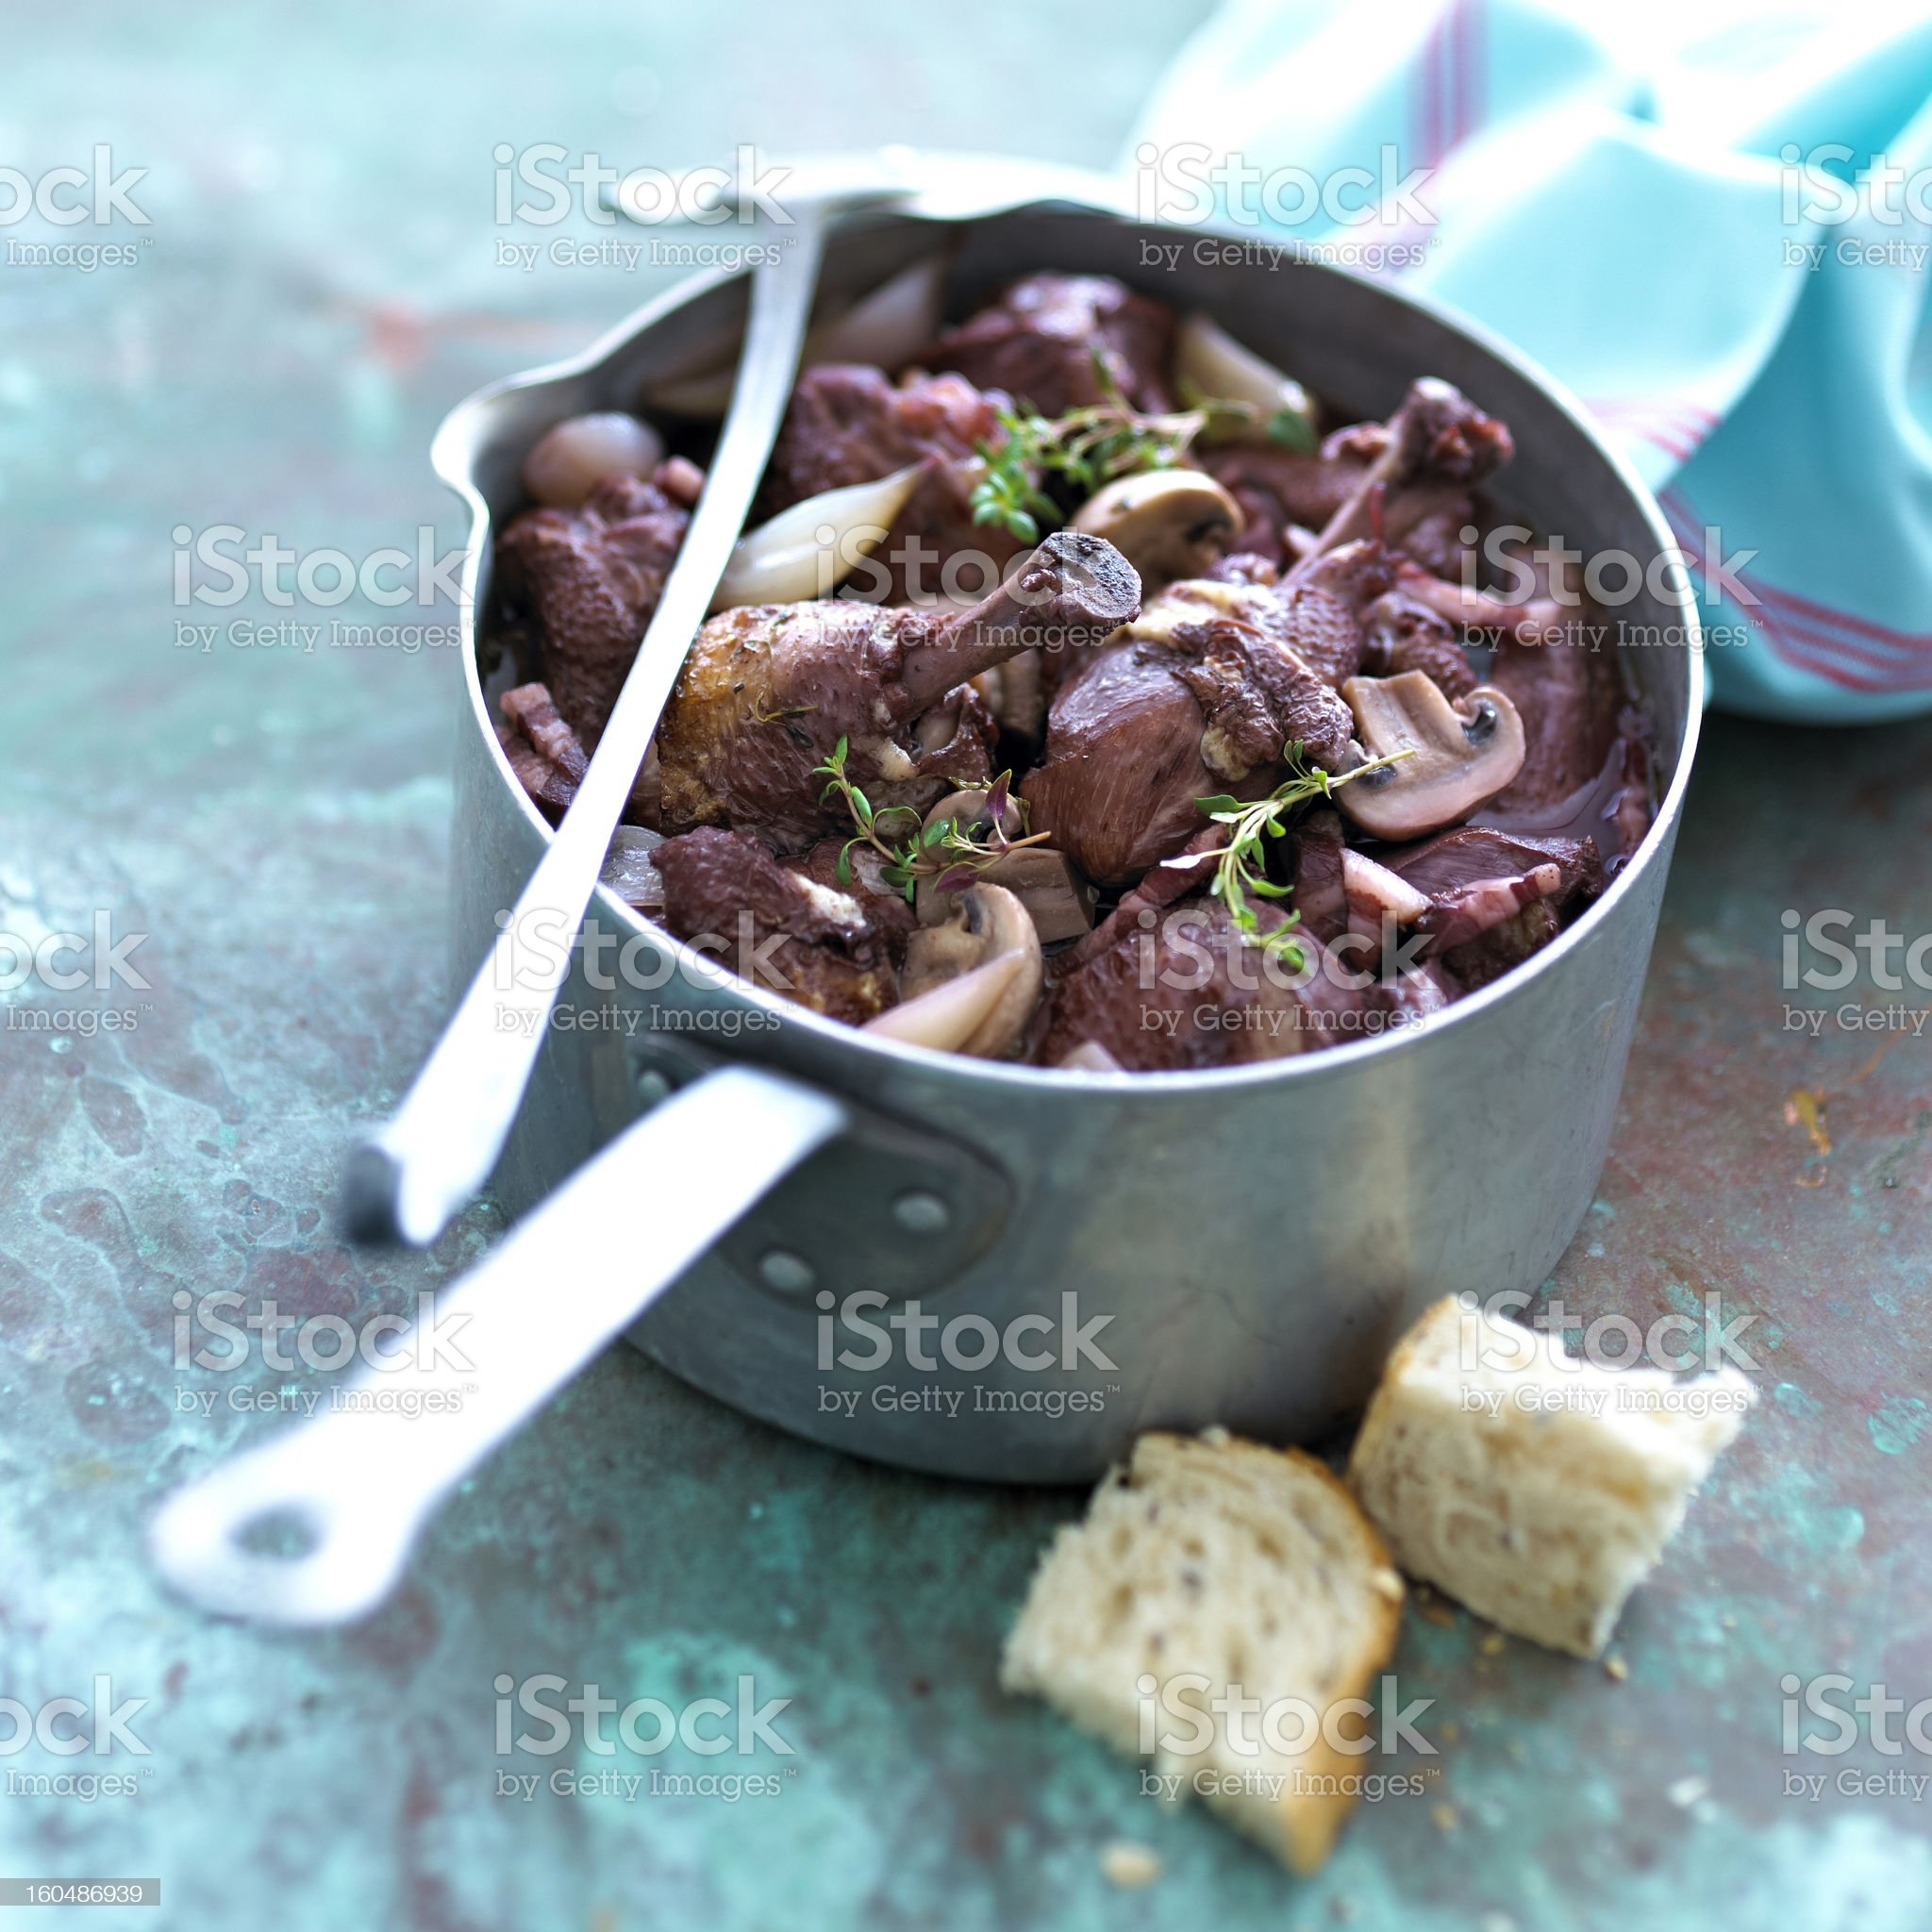 Coq au vin royalty-free stock photo